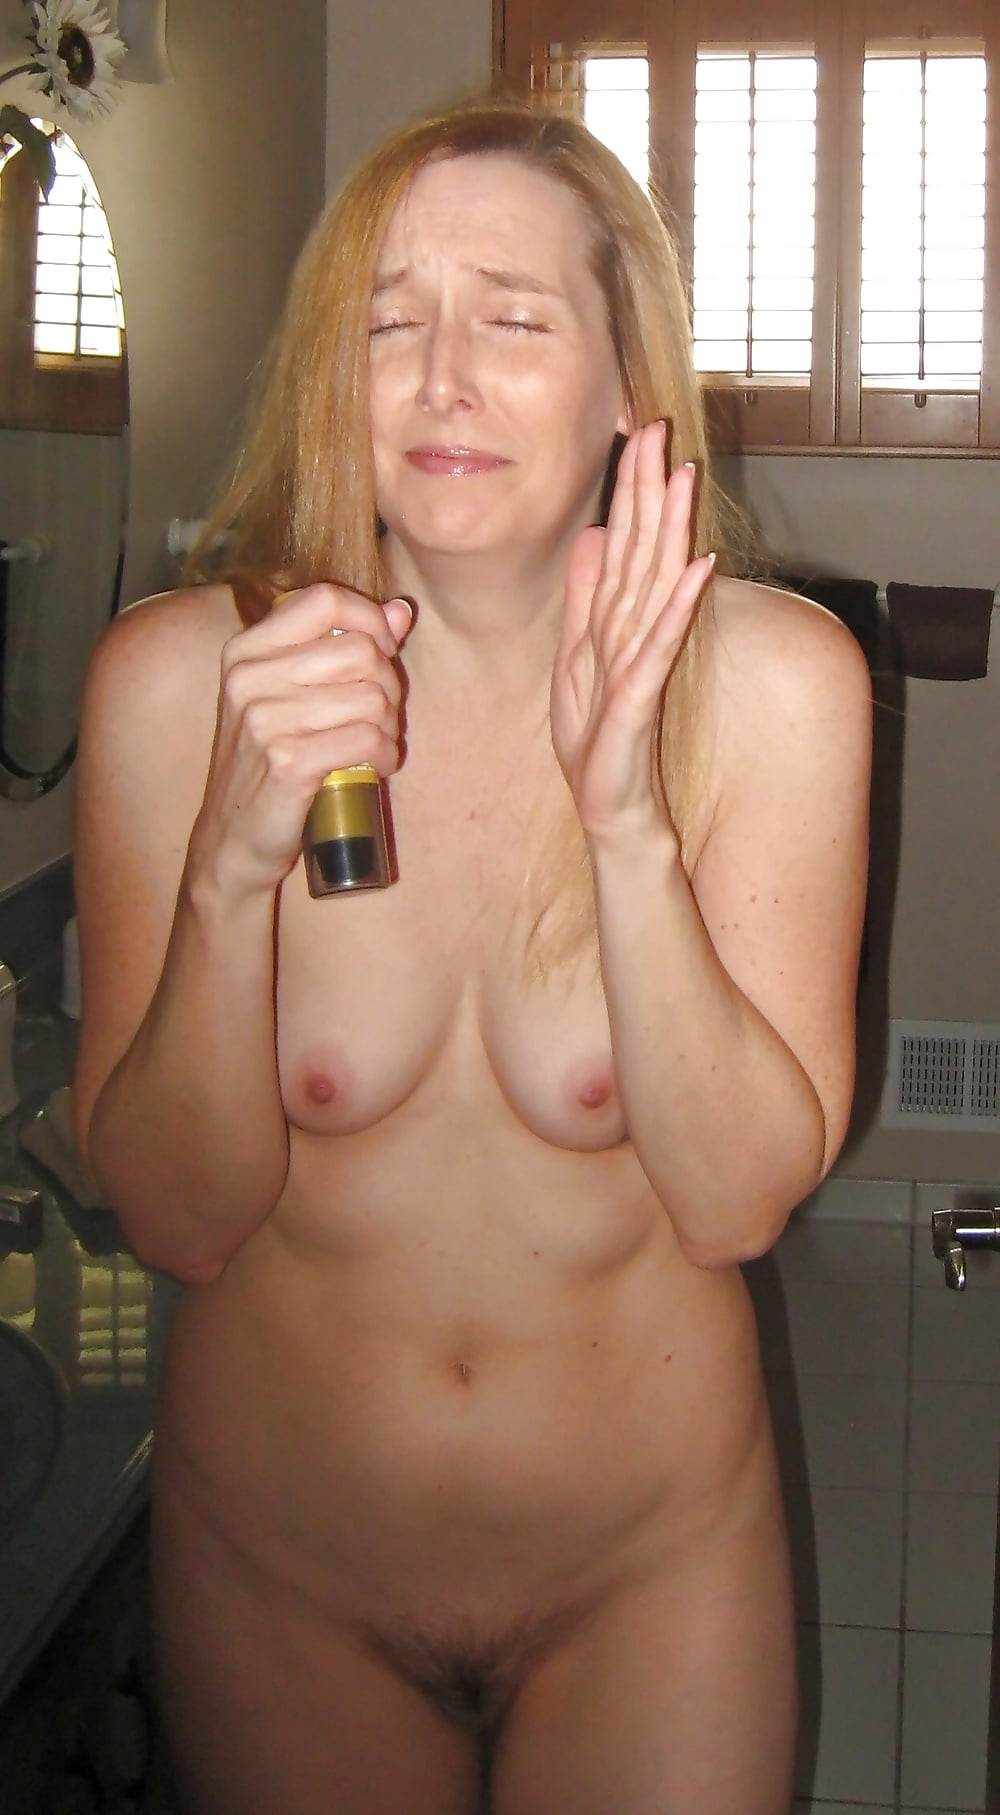 Naked wife caught 12